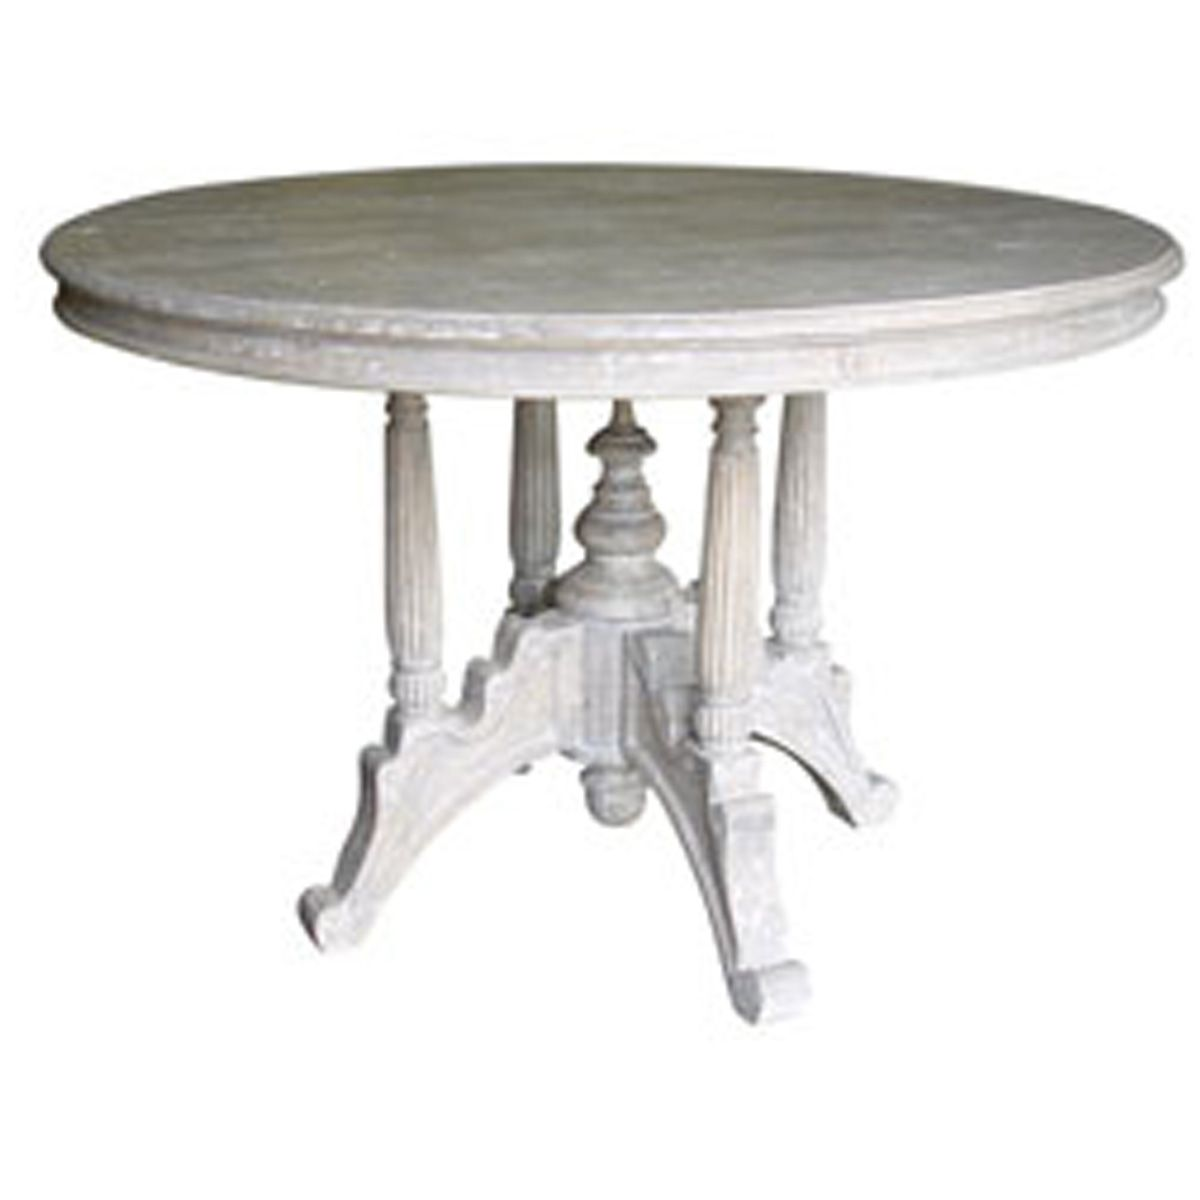 Cottage style dining tables rooms dining room furniture for Cottage style kitchen chairs